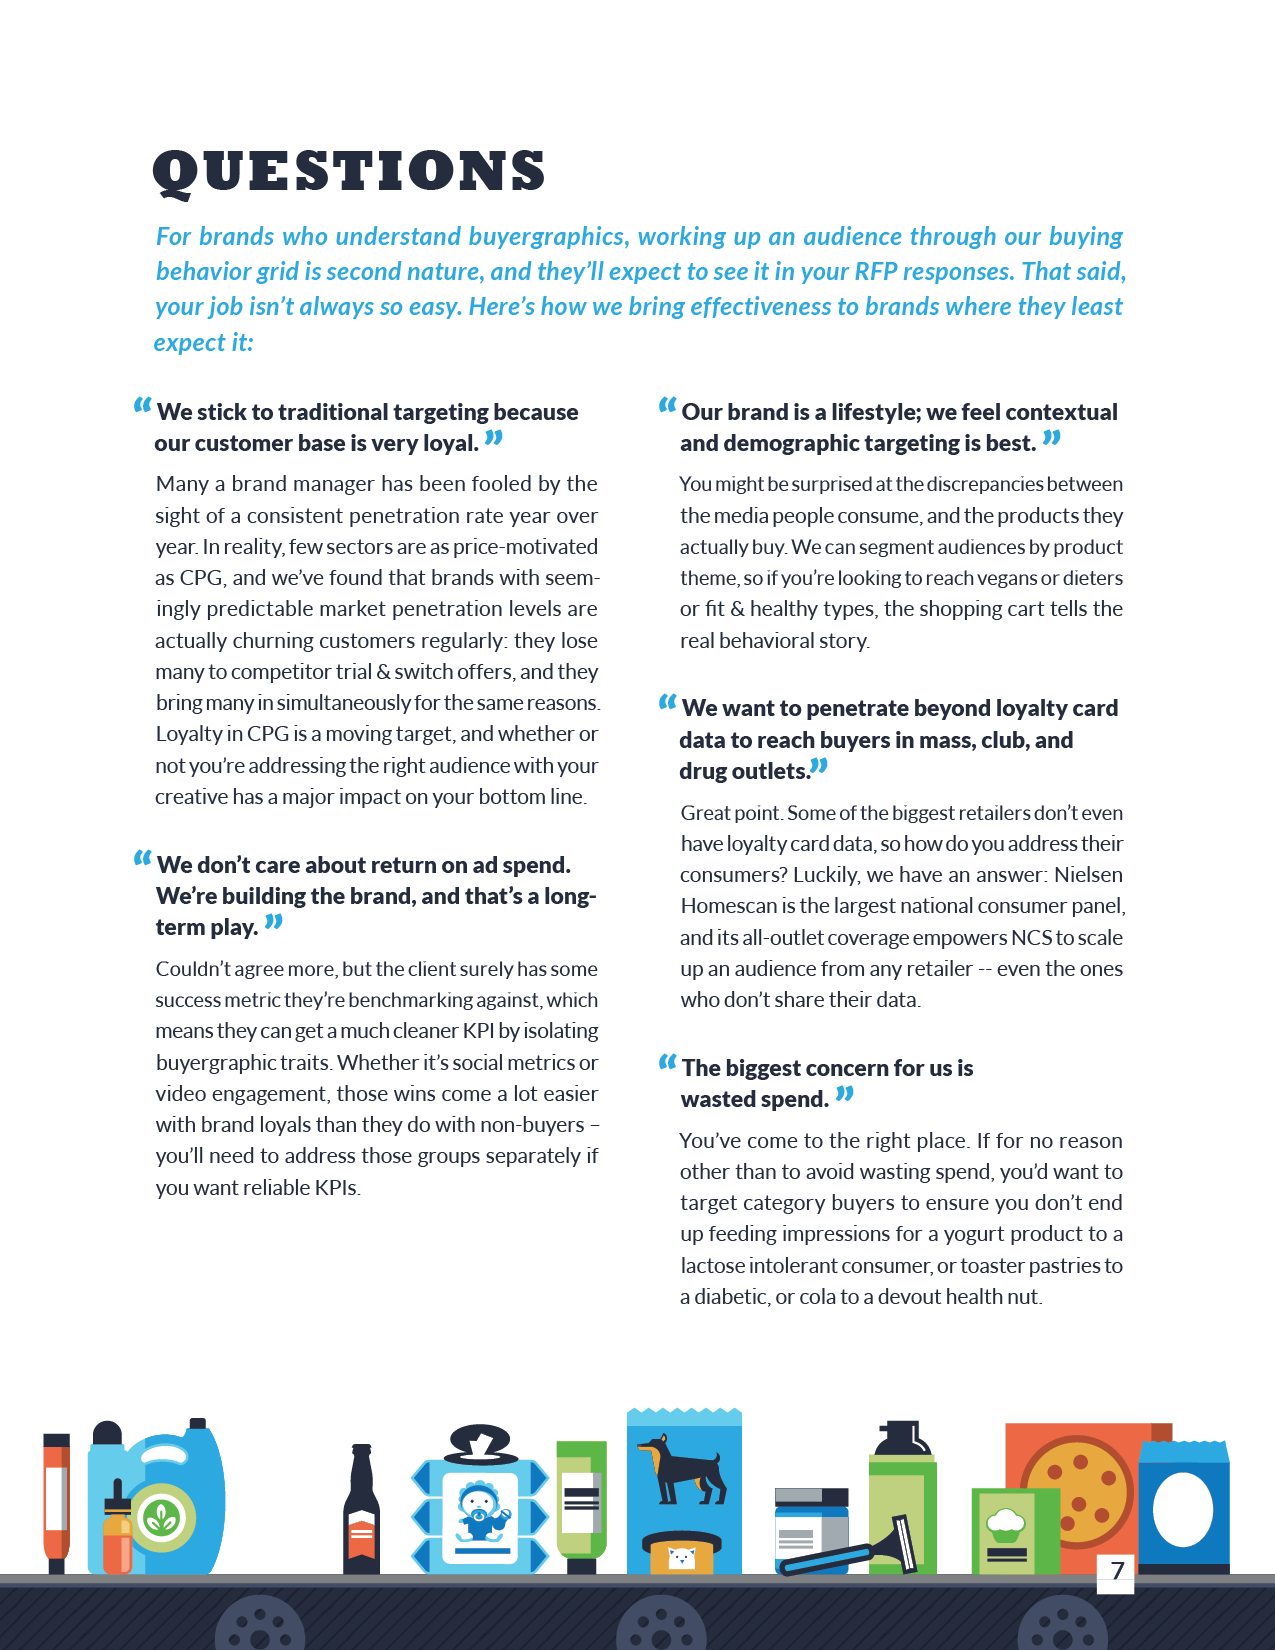 How to Grow CPG Business, inside page 7